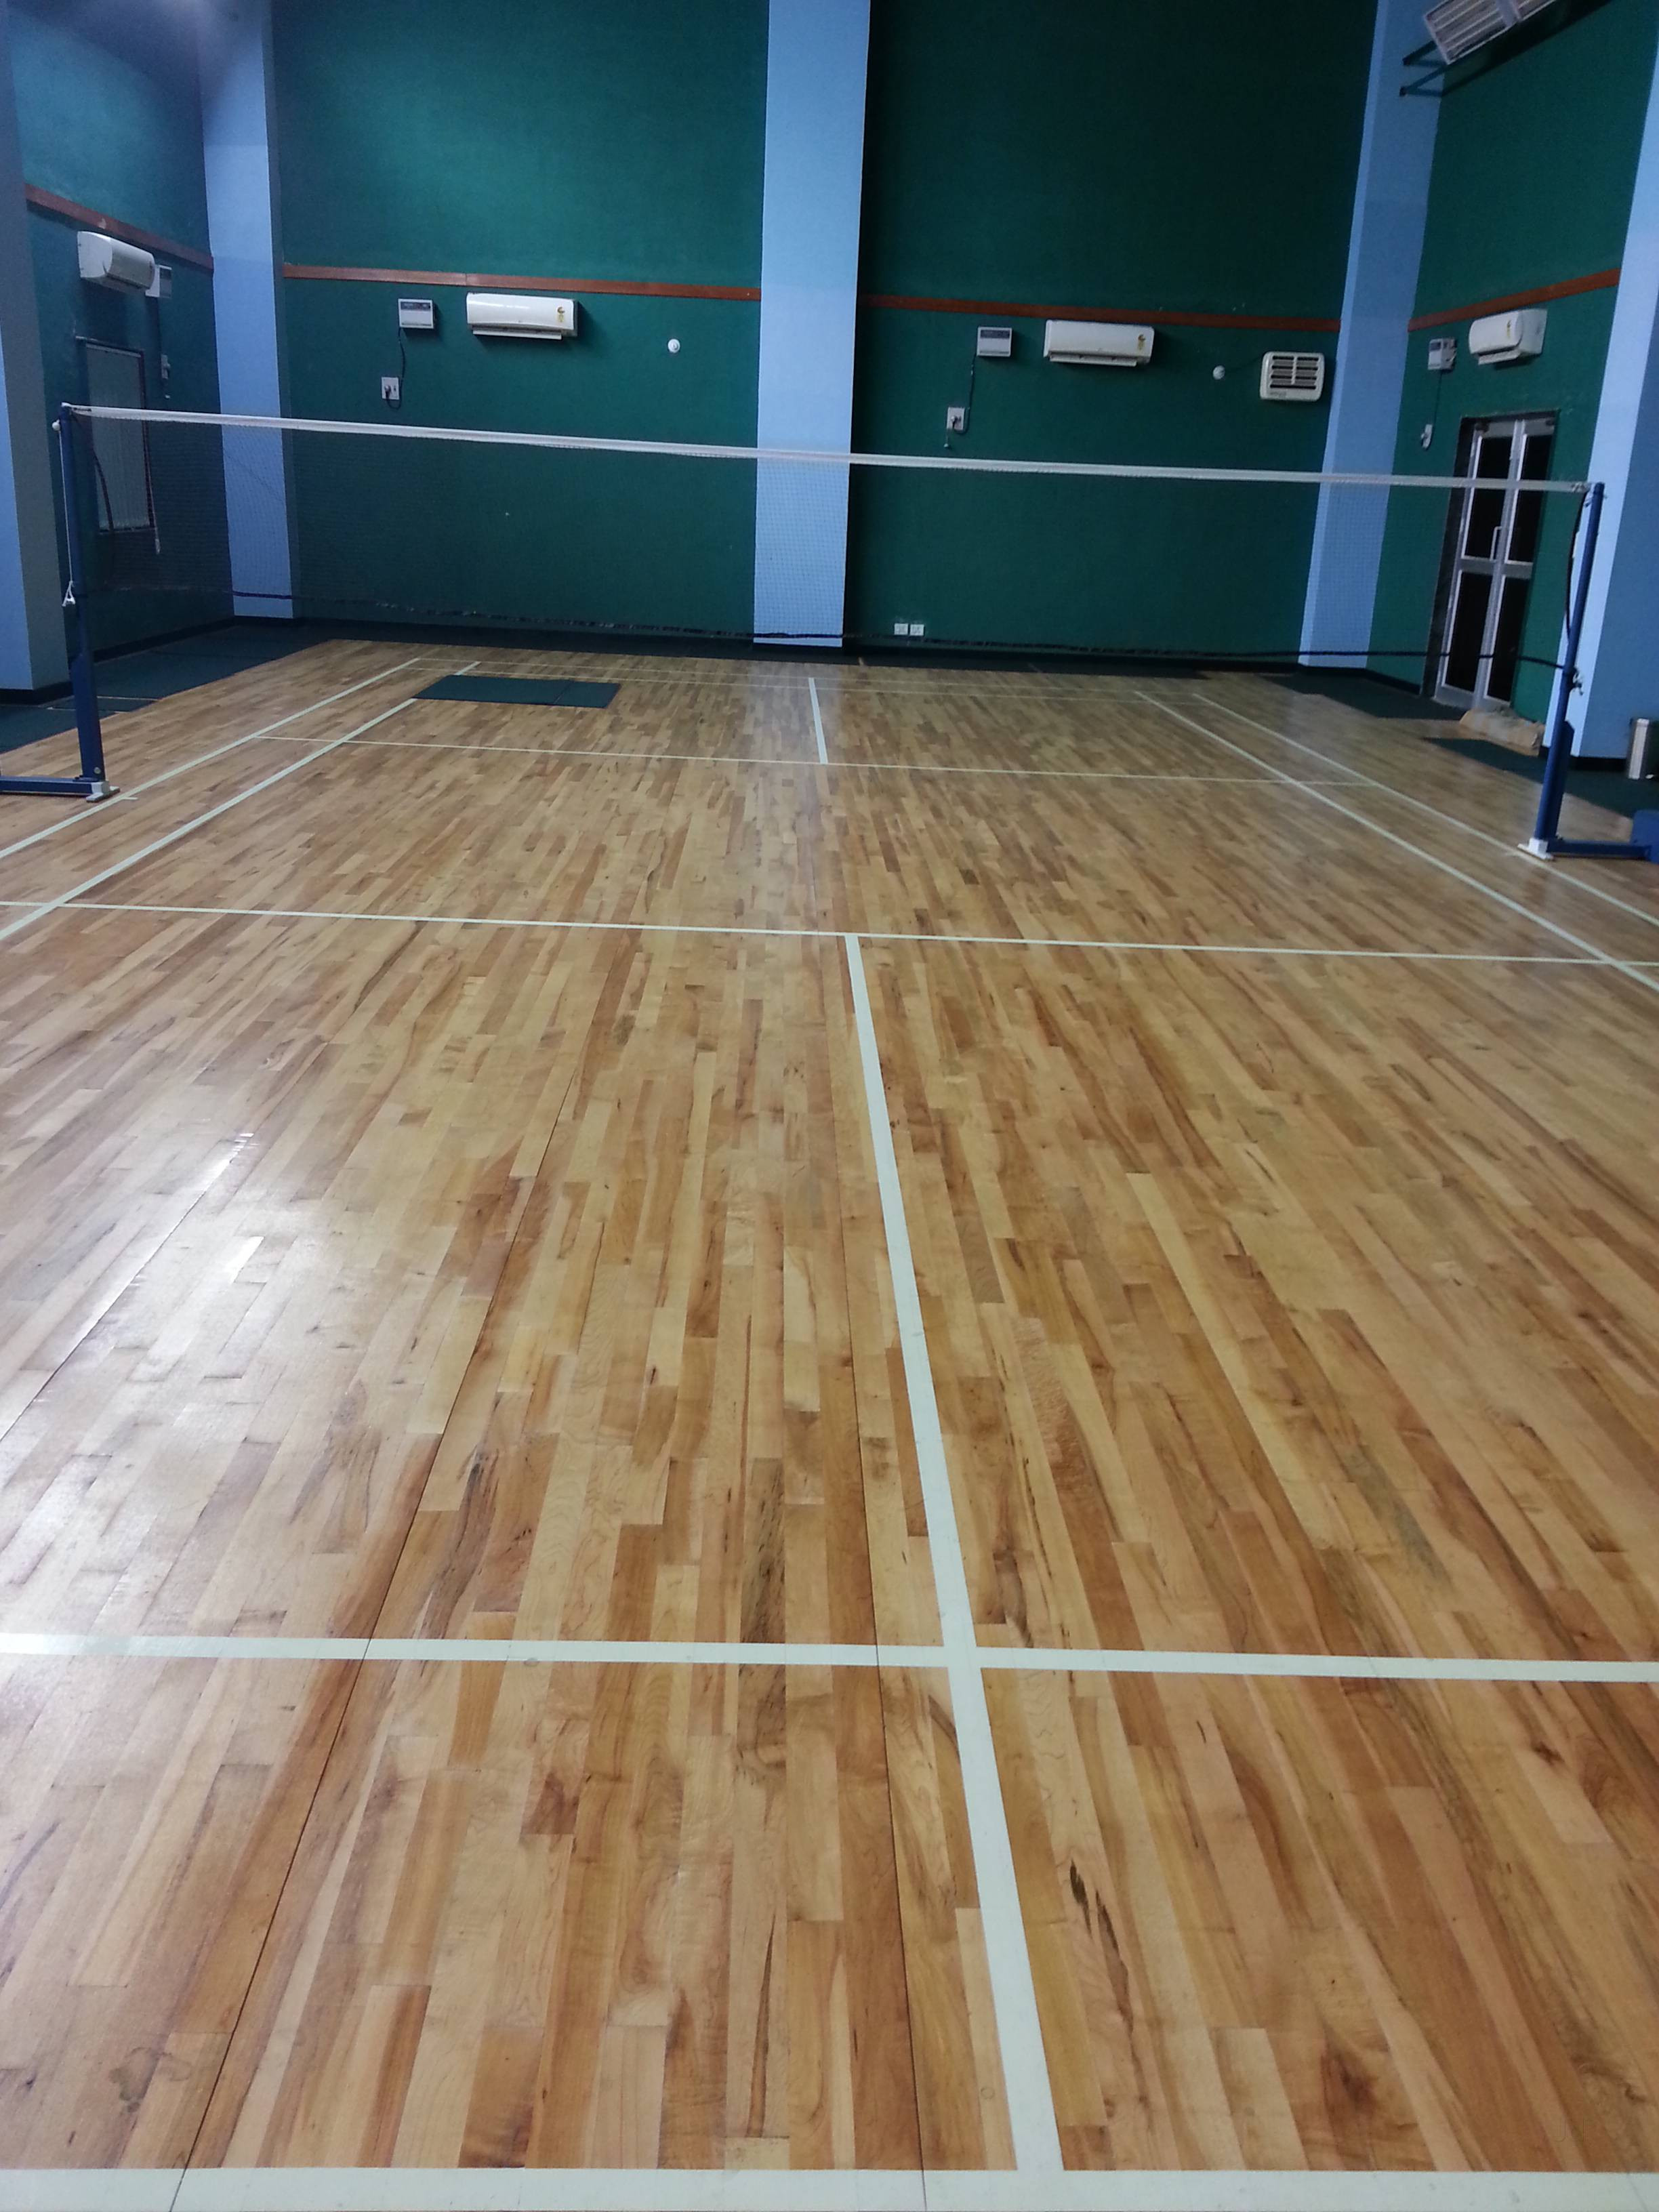 hardwood flooring suppliers near me of revaa constructions photos bopal ahmedabad pictures images intended for flooring manufacturers indoor wooden flooring badminton court revaa constructions photos bopal ahmedabad tennis court